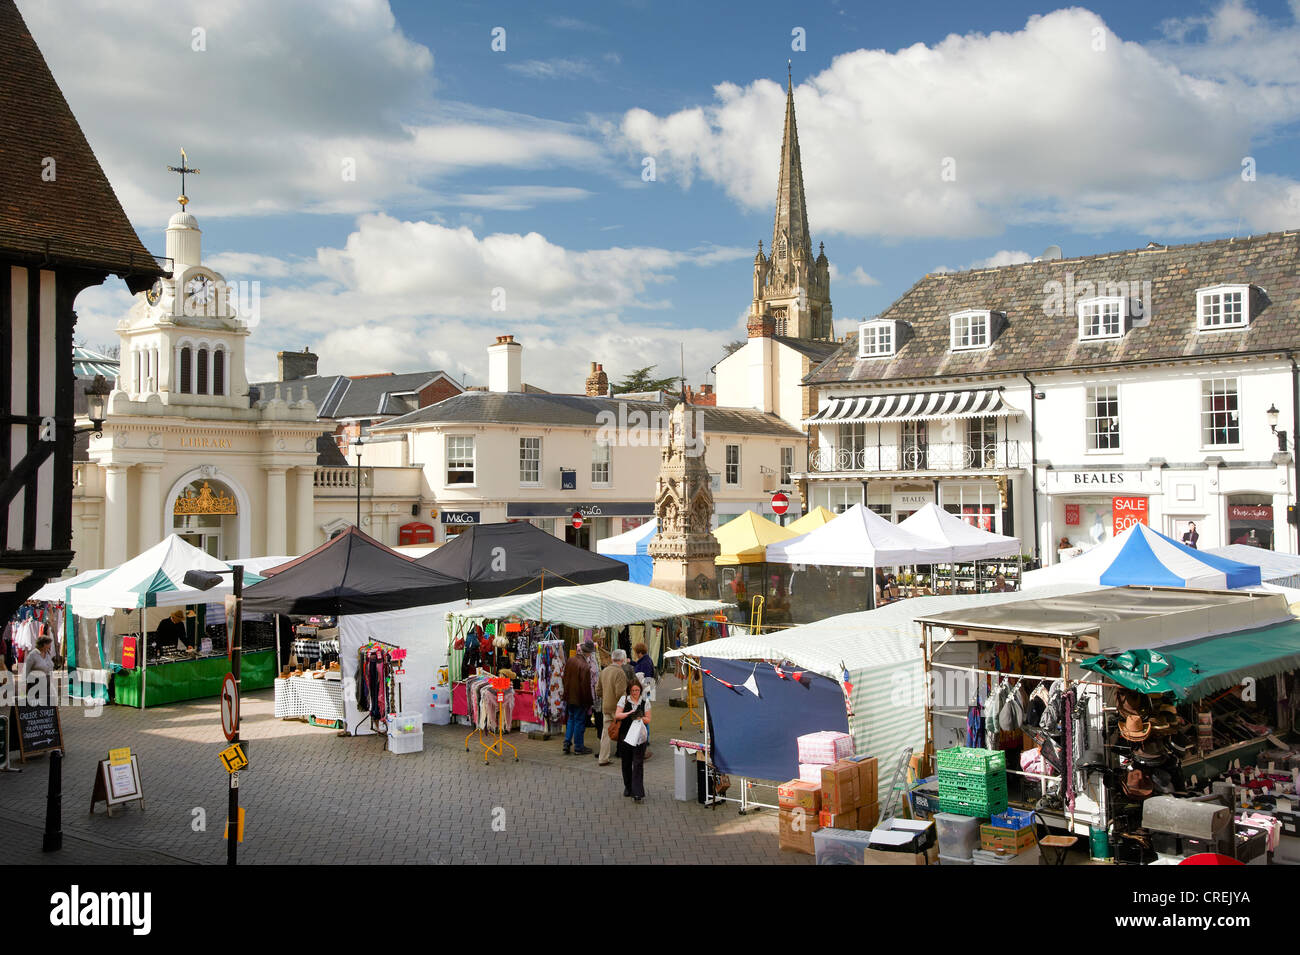 alte englische marktstadt mit denkm lern und kirchturm uk stockfoto bild 48880030 alamy. Black Bedroom Furniture Sets. Home Design Ideas